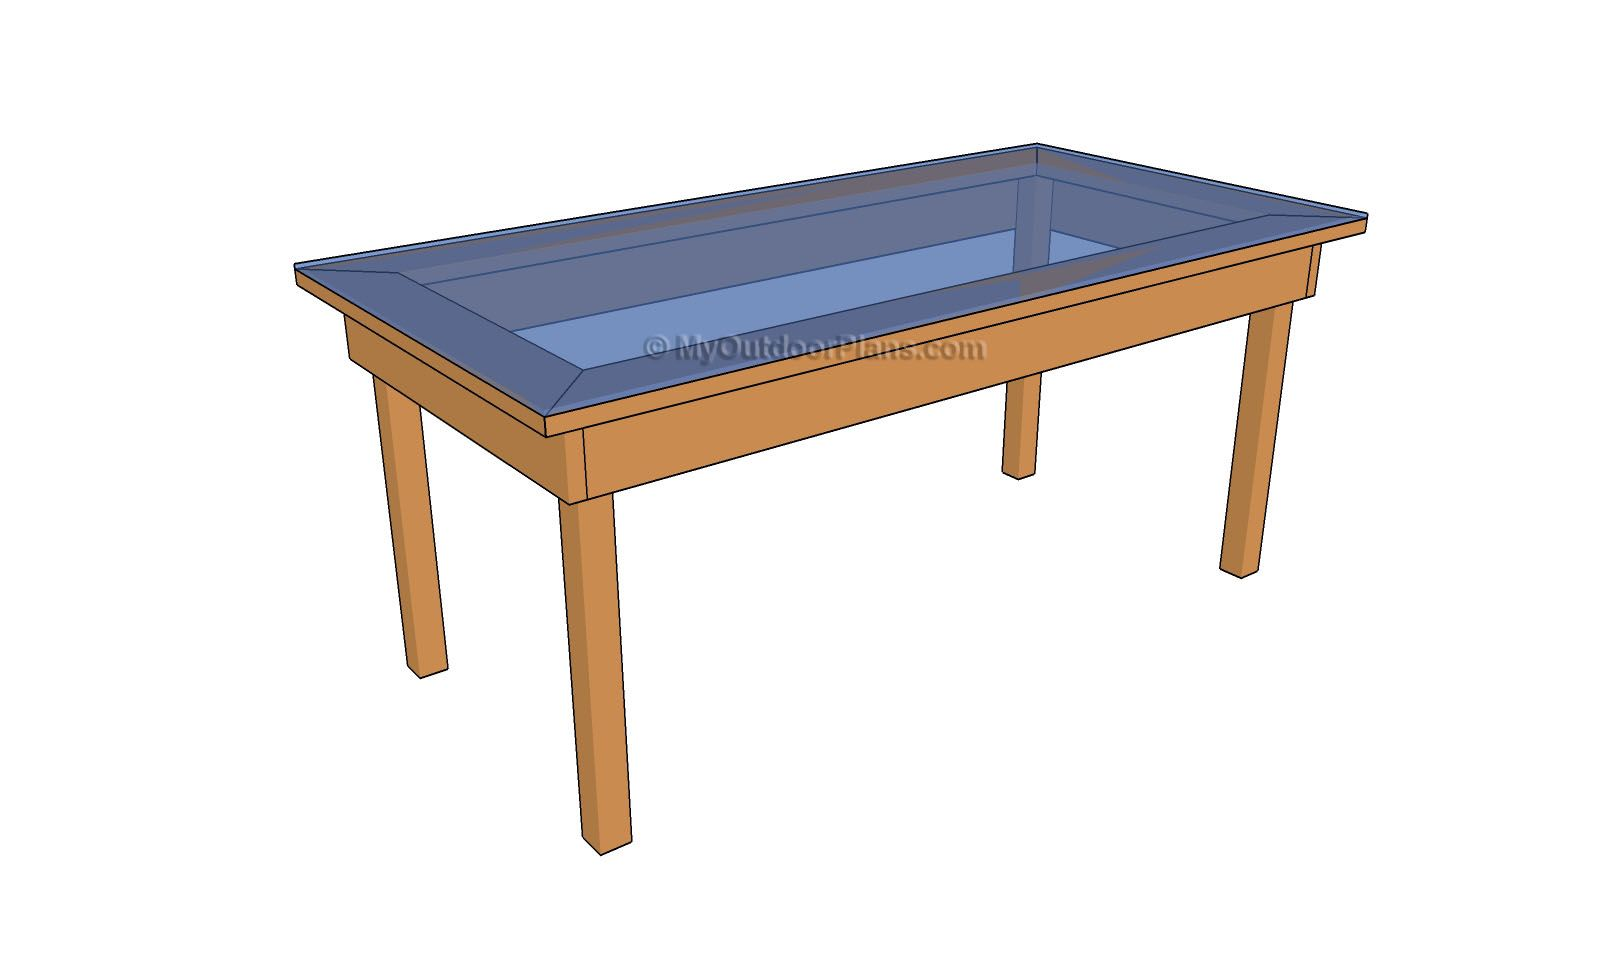 Outdoor wood table plans - Permalink To Plans For Outdoor Wood Table